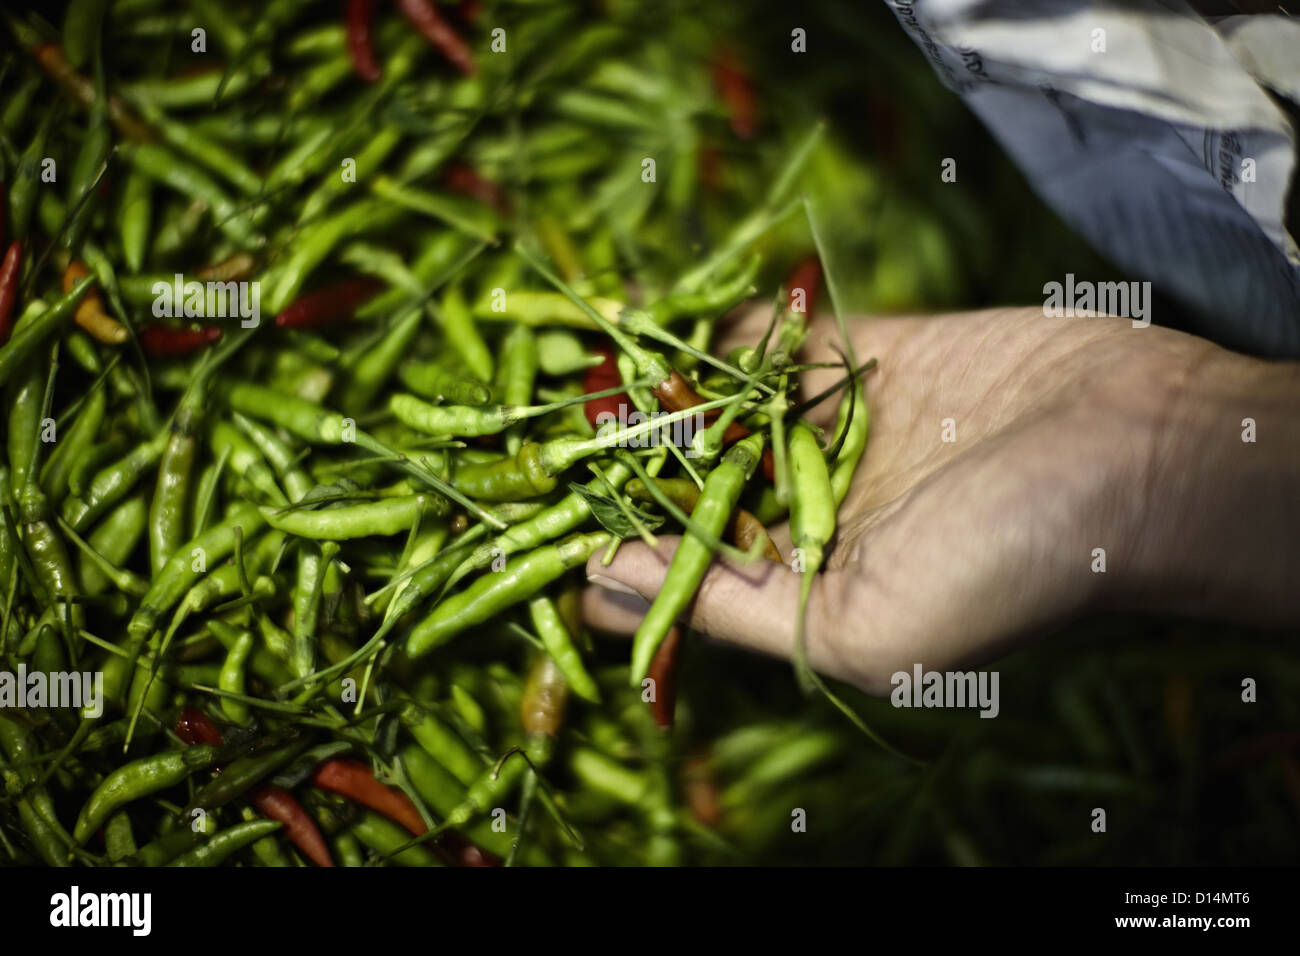 Pile of fresh chilis for sale in market Stock Photo